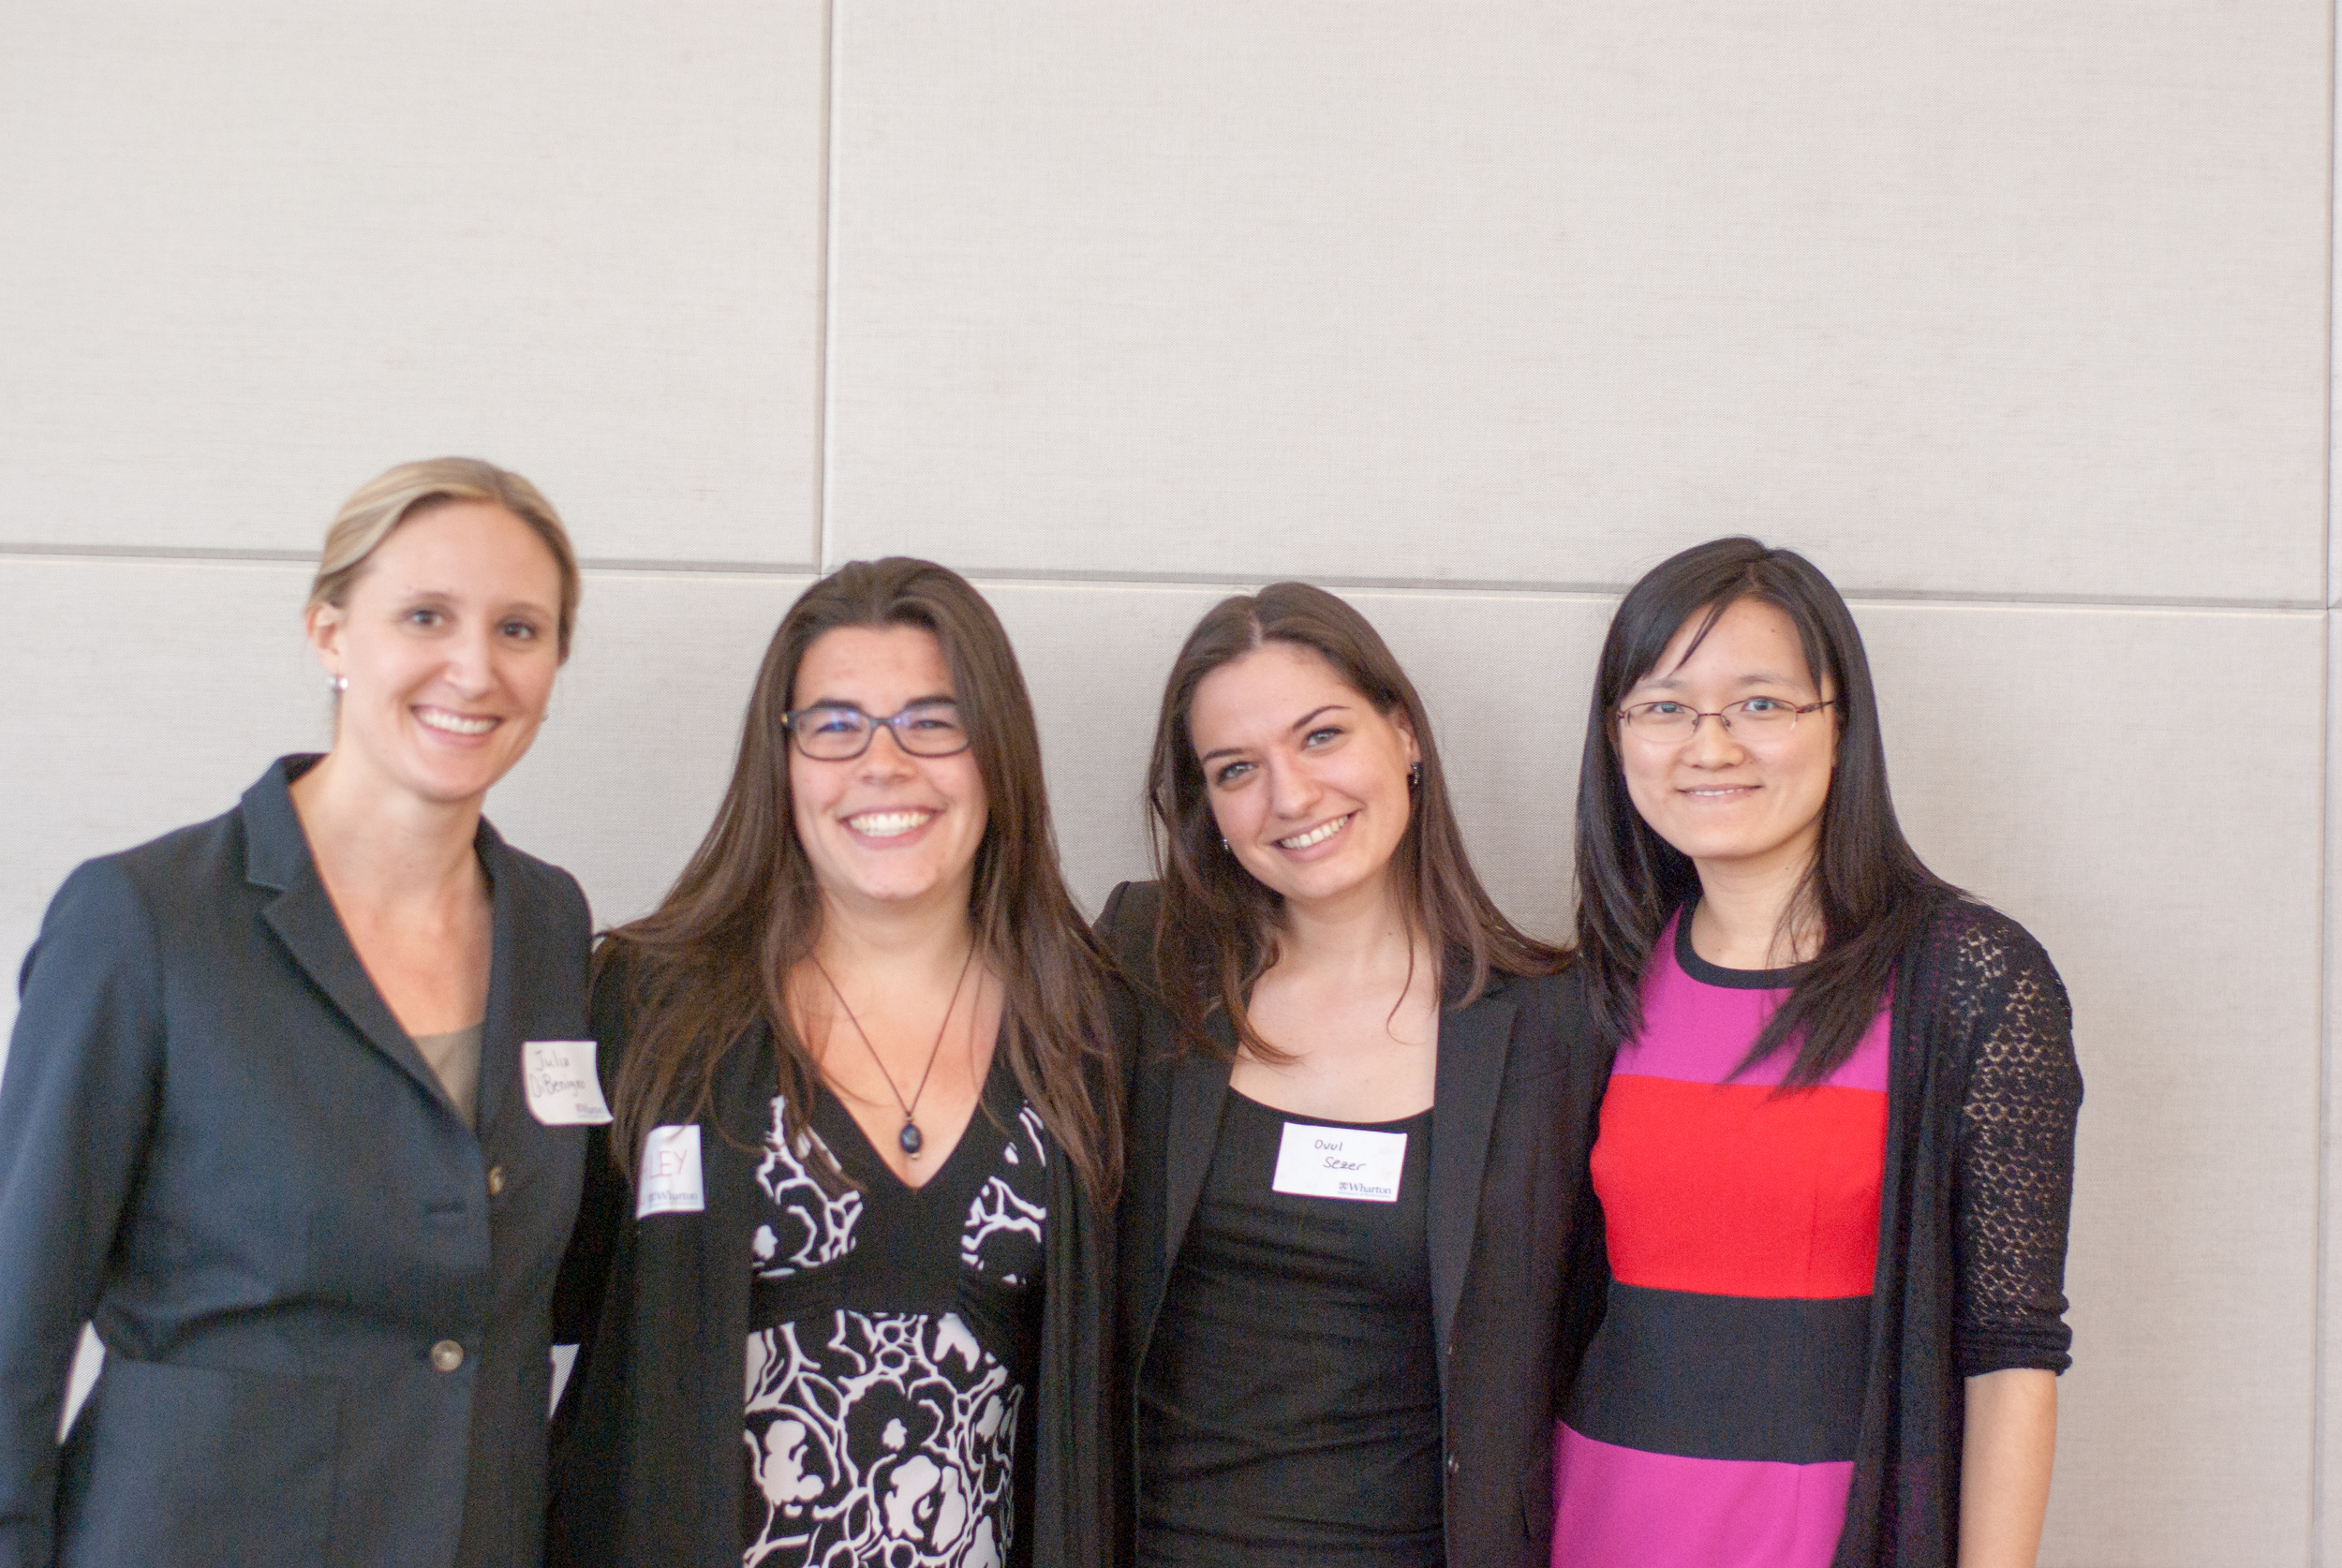 PHD STUDENT PRESENTERS (FROM lEFT TO rIGHT): jULIA dIBENIGNO,  MIT ; ASHLEY MARTIN,  cbs ; OVUL SEZER,  HBS;  AND HENGCHEN DAI,  wharton   (aYUNG tSENG,  cbs , ABSENT FROM PHOTO)